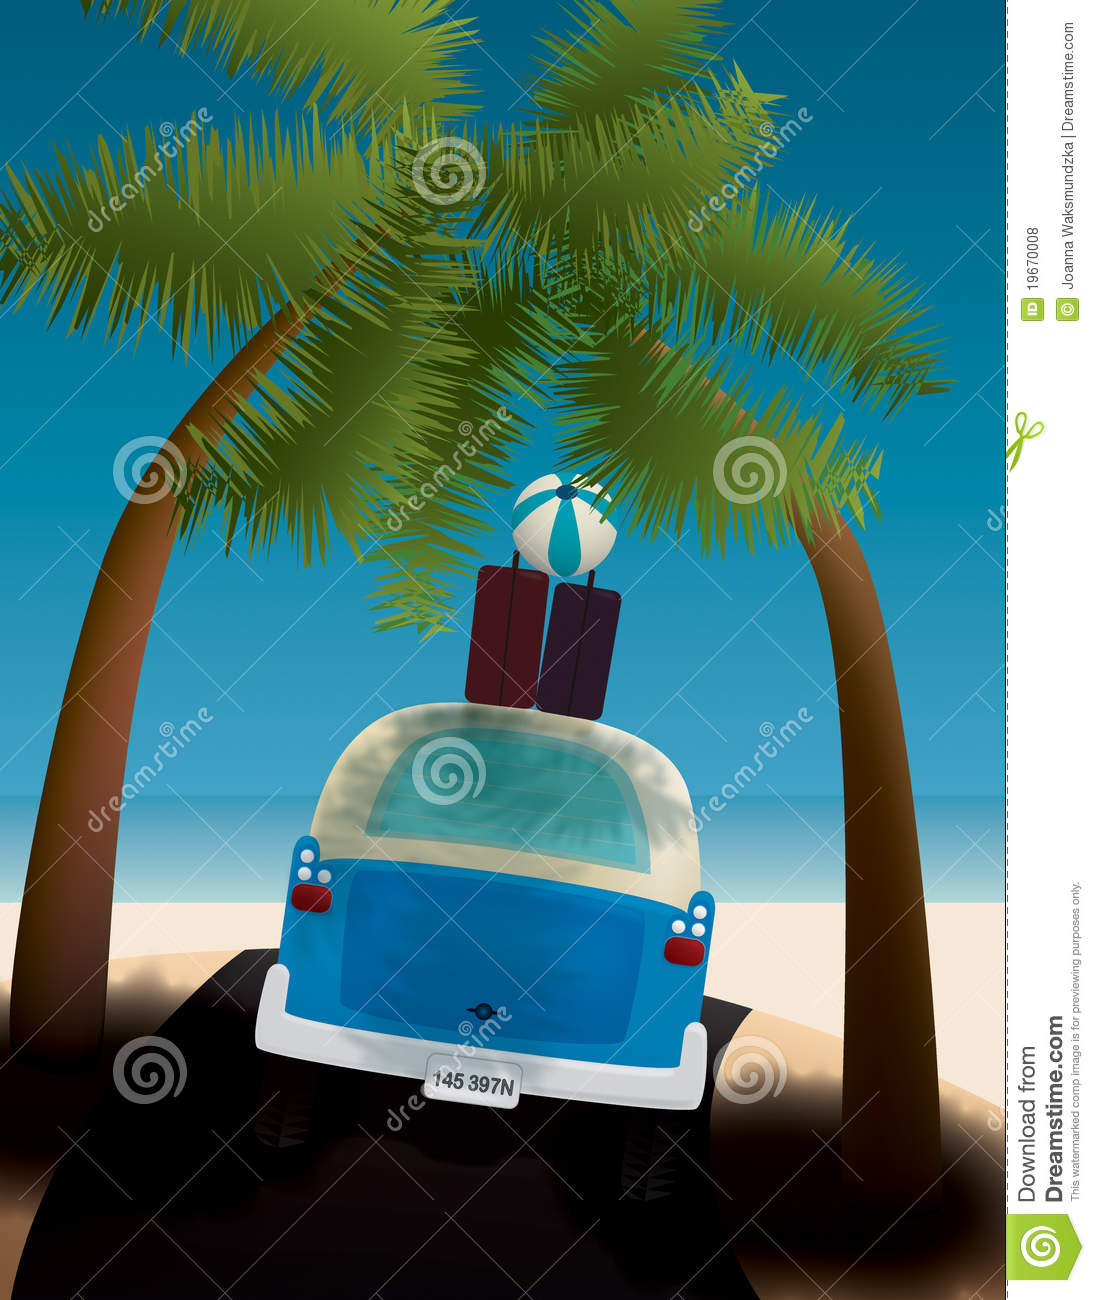 Go Travel Vacations: Let's Go On Vacation Stock Illustration. Image Of Weather